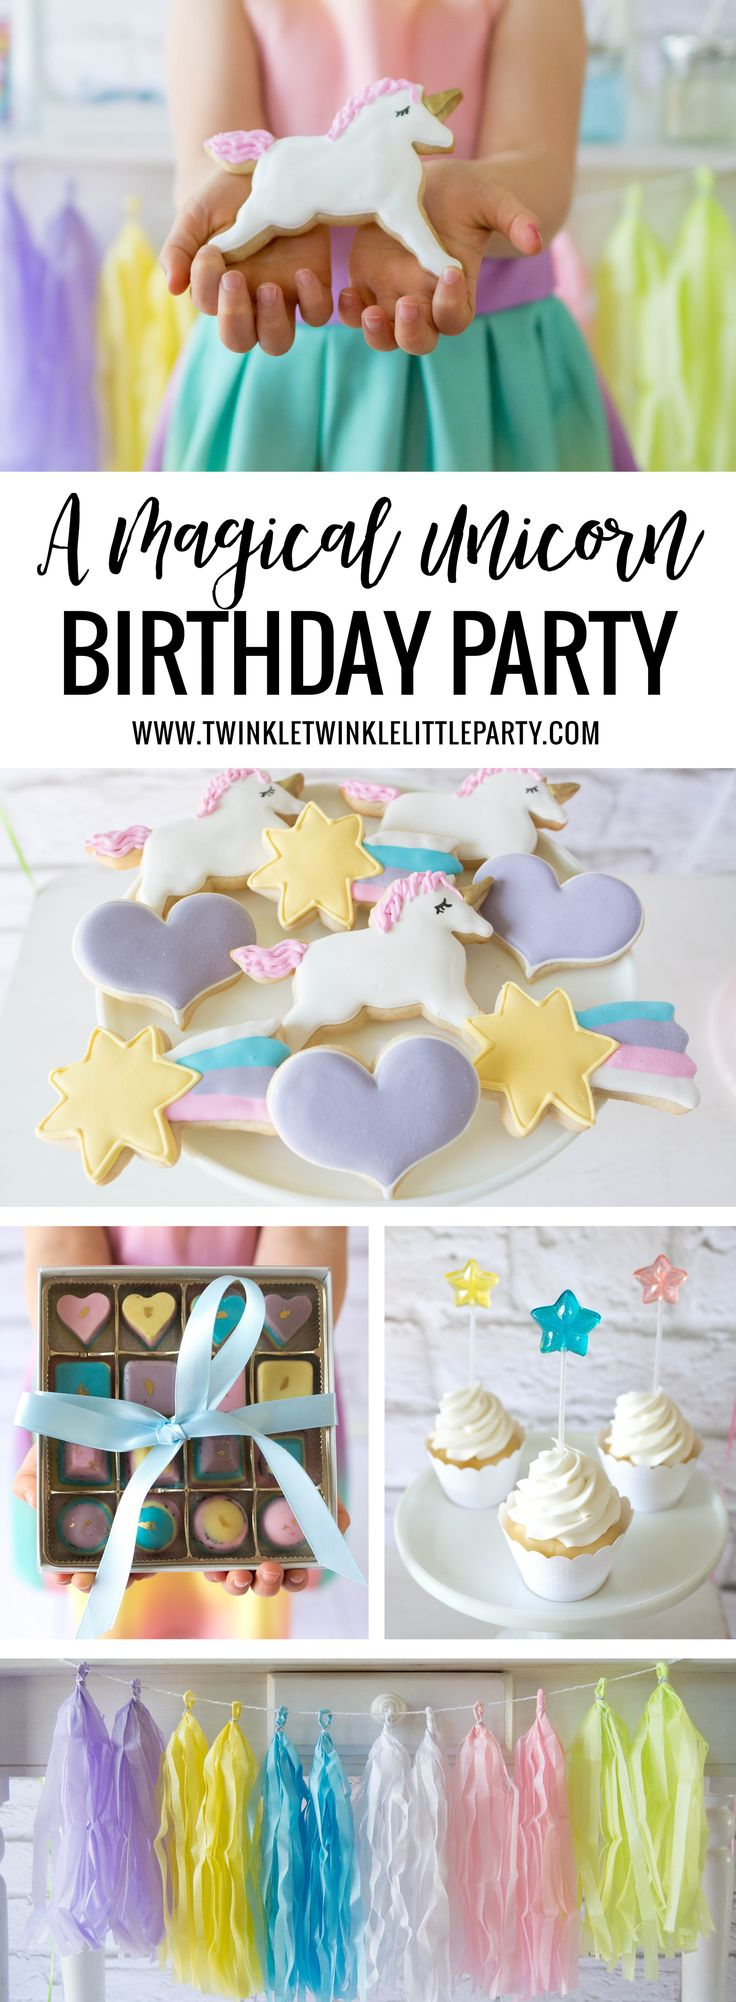 Throw a Magical #Unicorn Birthday Party #littlethingz2